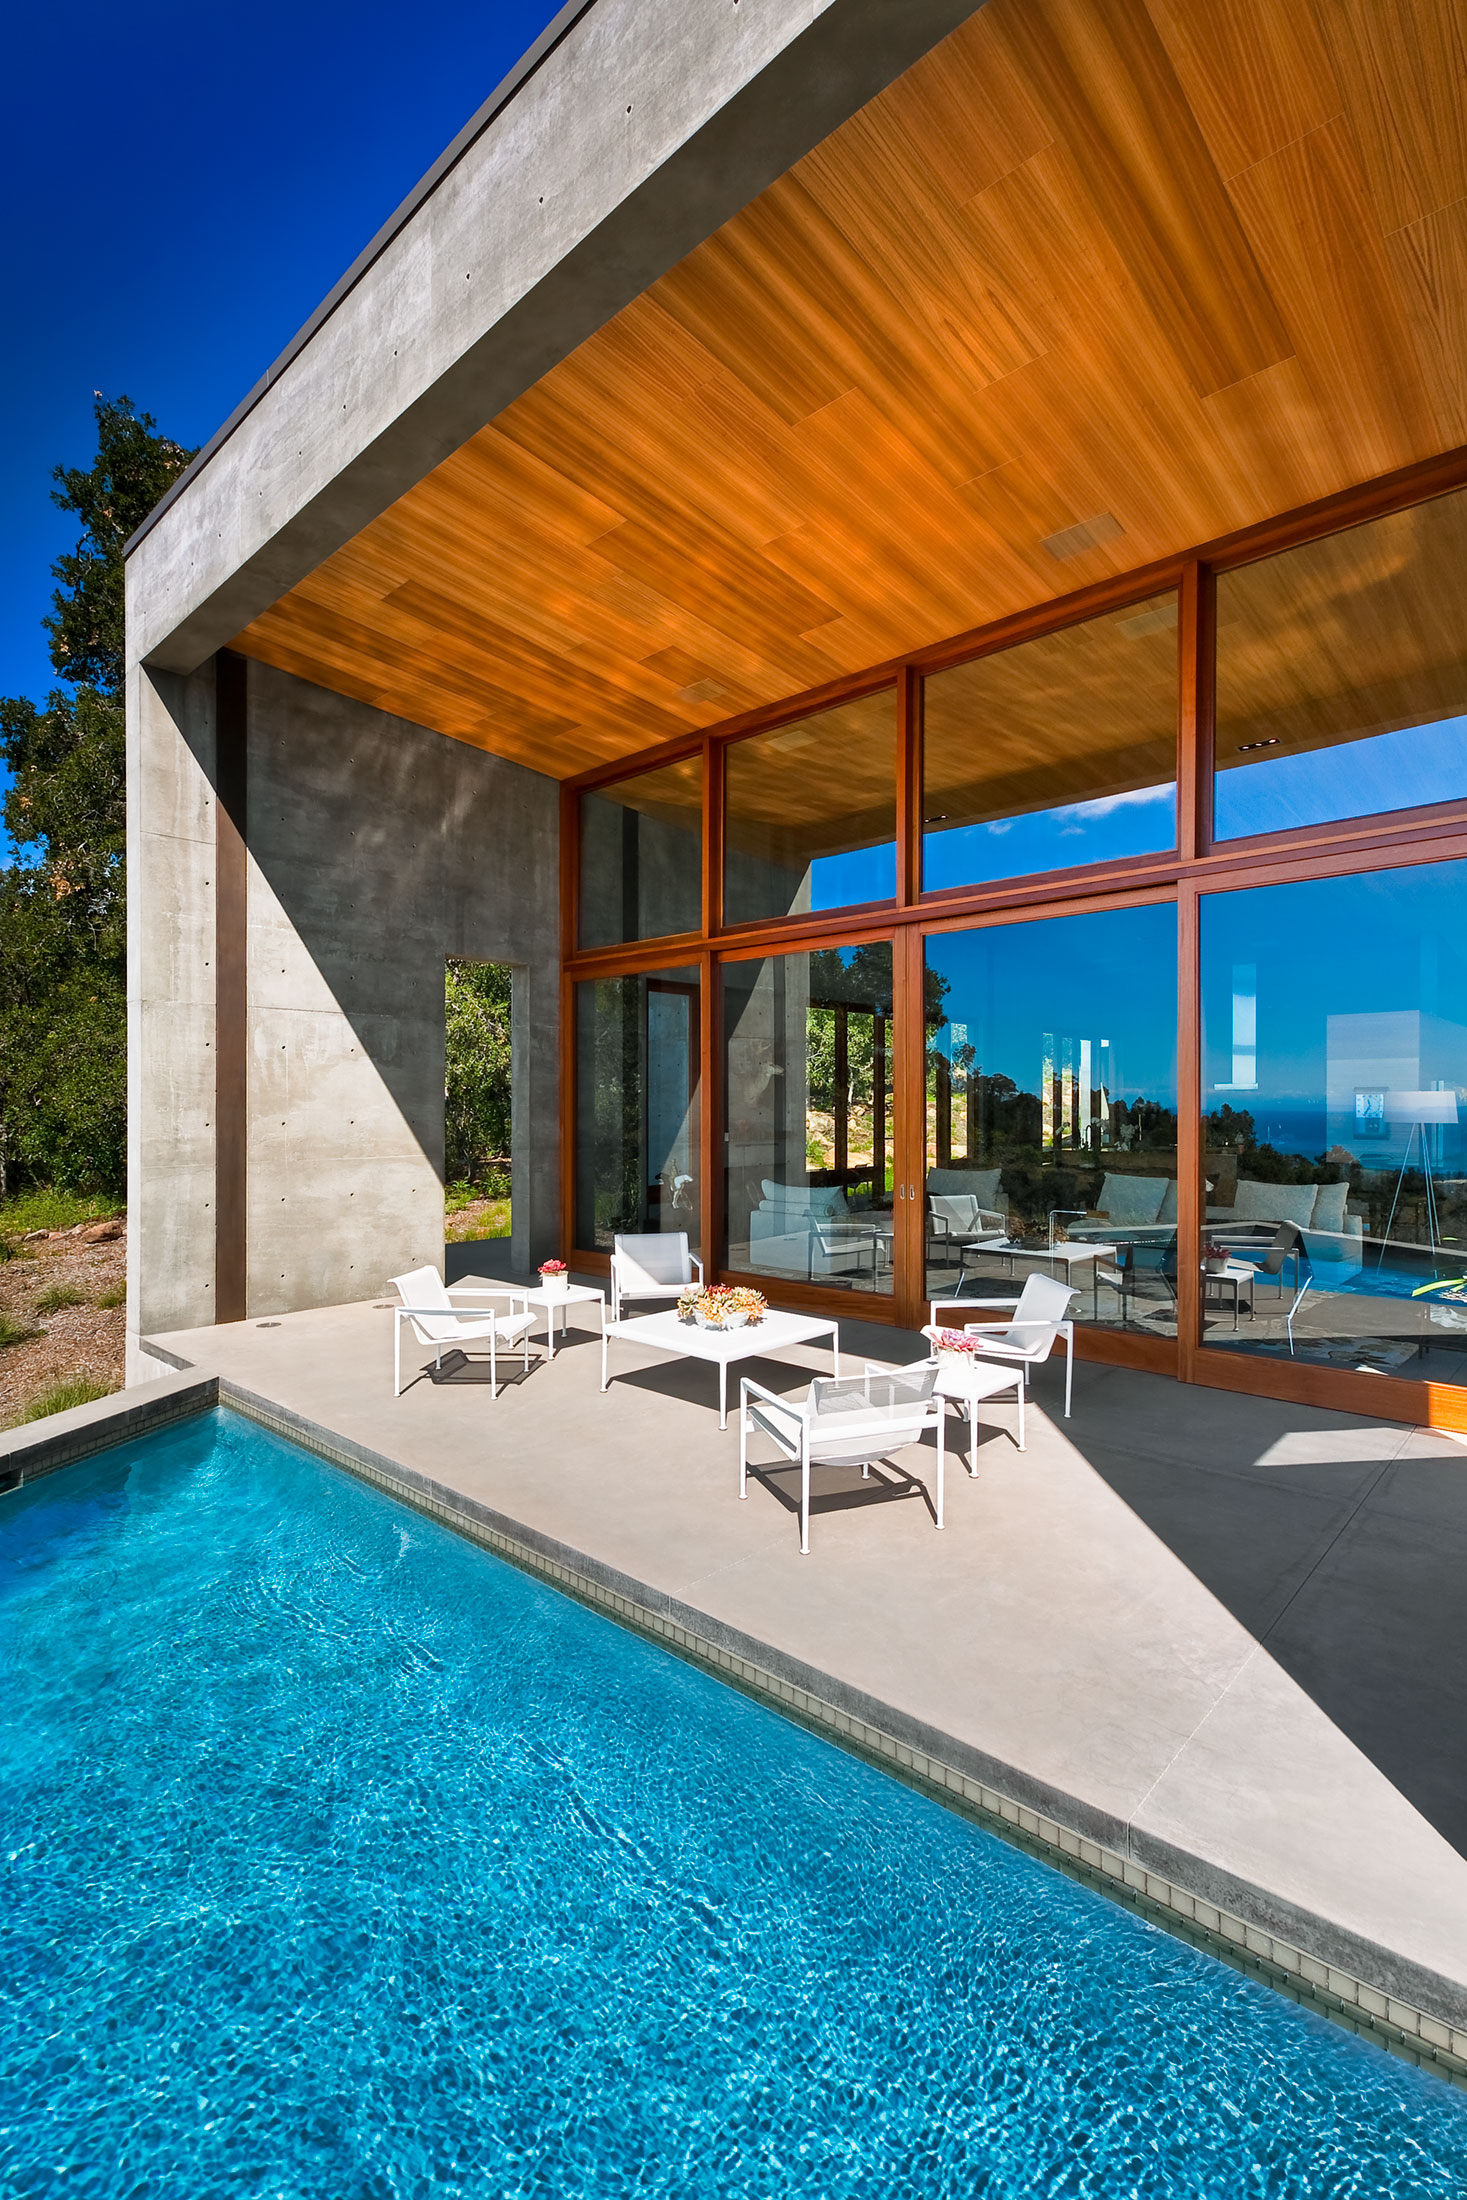 modern-architecture-residential-concrete-wood-pool-indoor-outdoor-california-shubindonaldson-toro-canyon-1